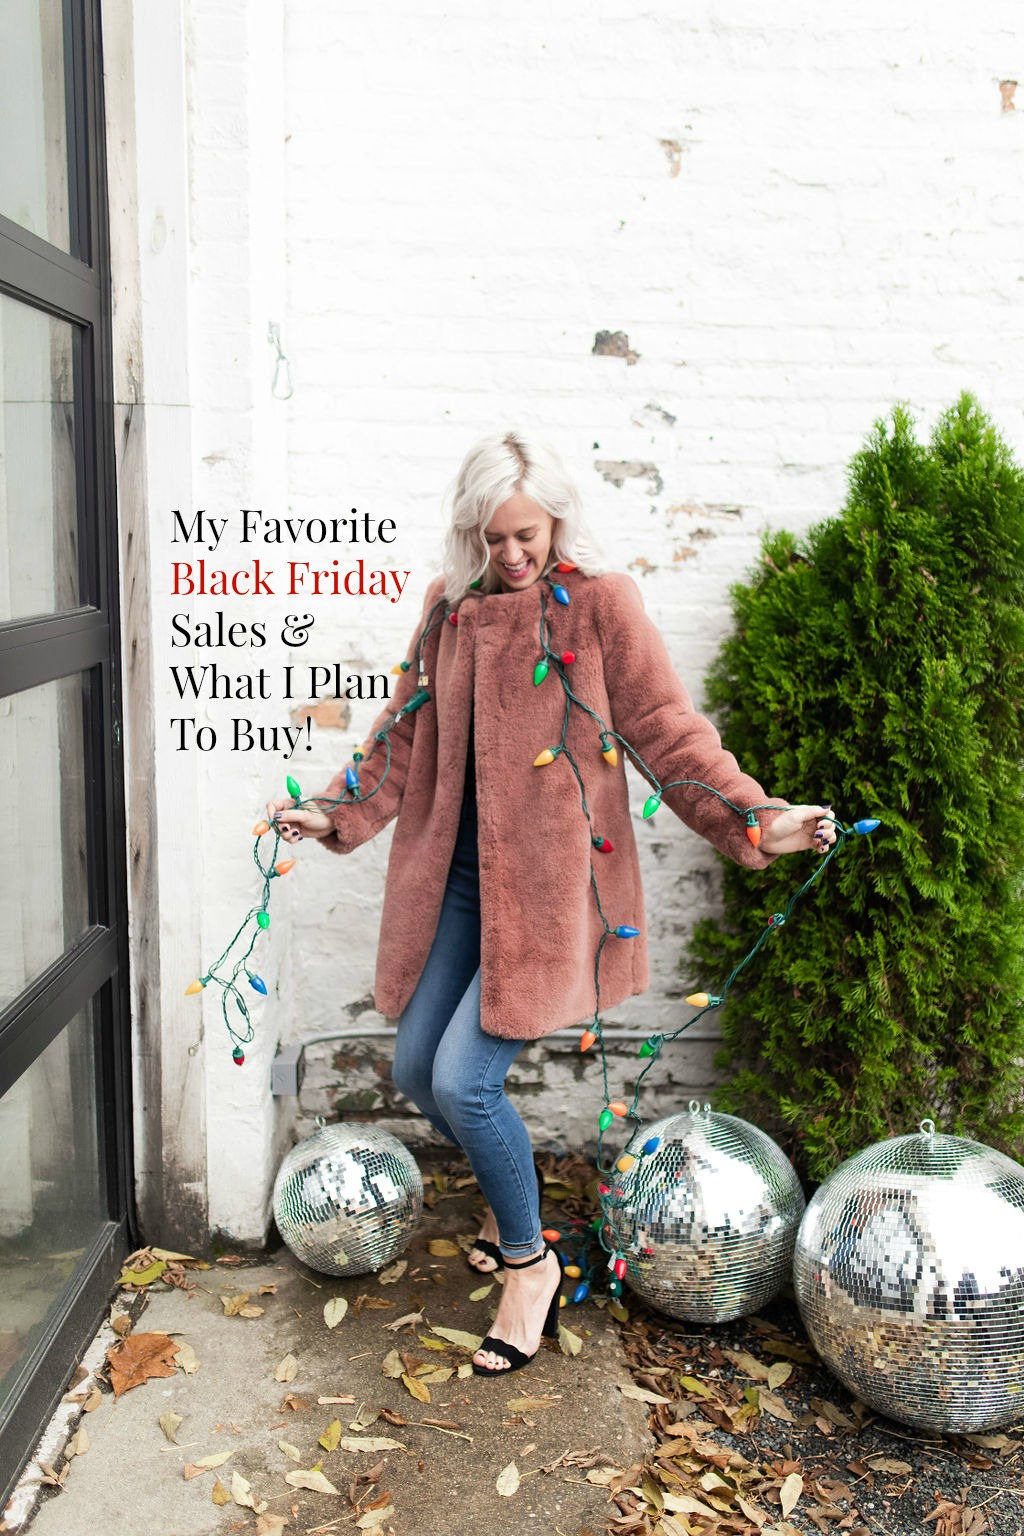 e3ed24d573b44 My Favorite Black Friday Sales & What I Plan To Buy! - THE DAILY TAY